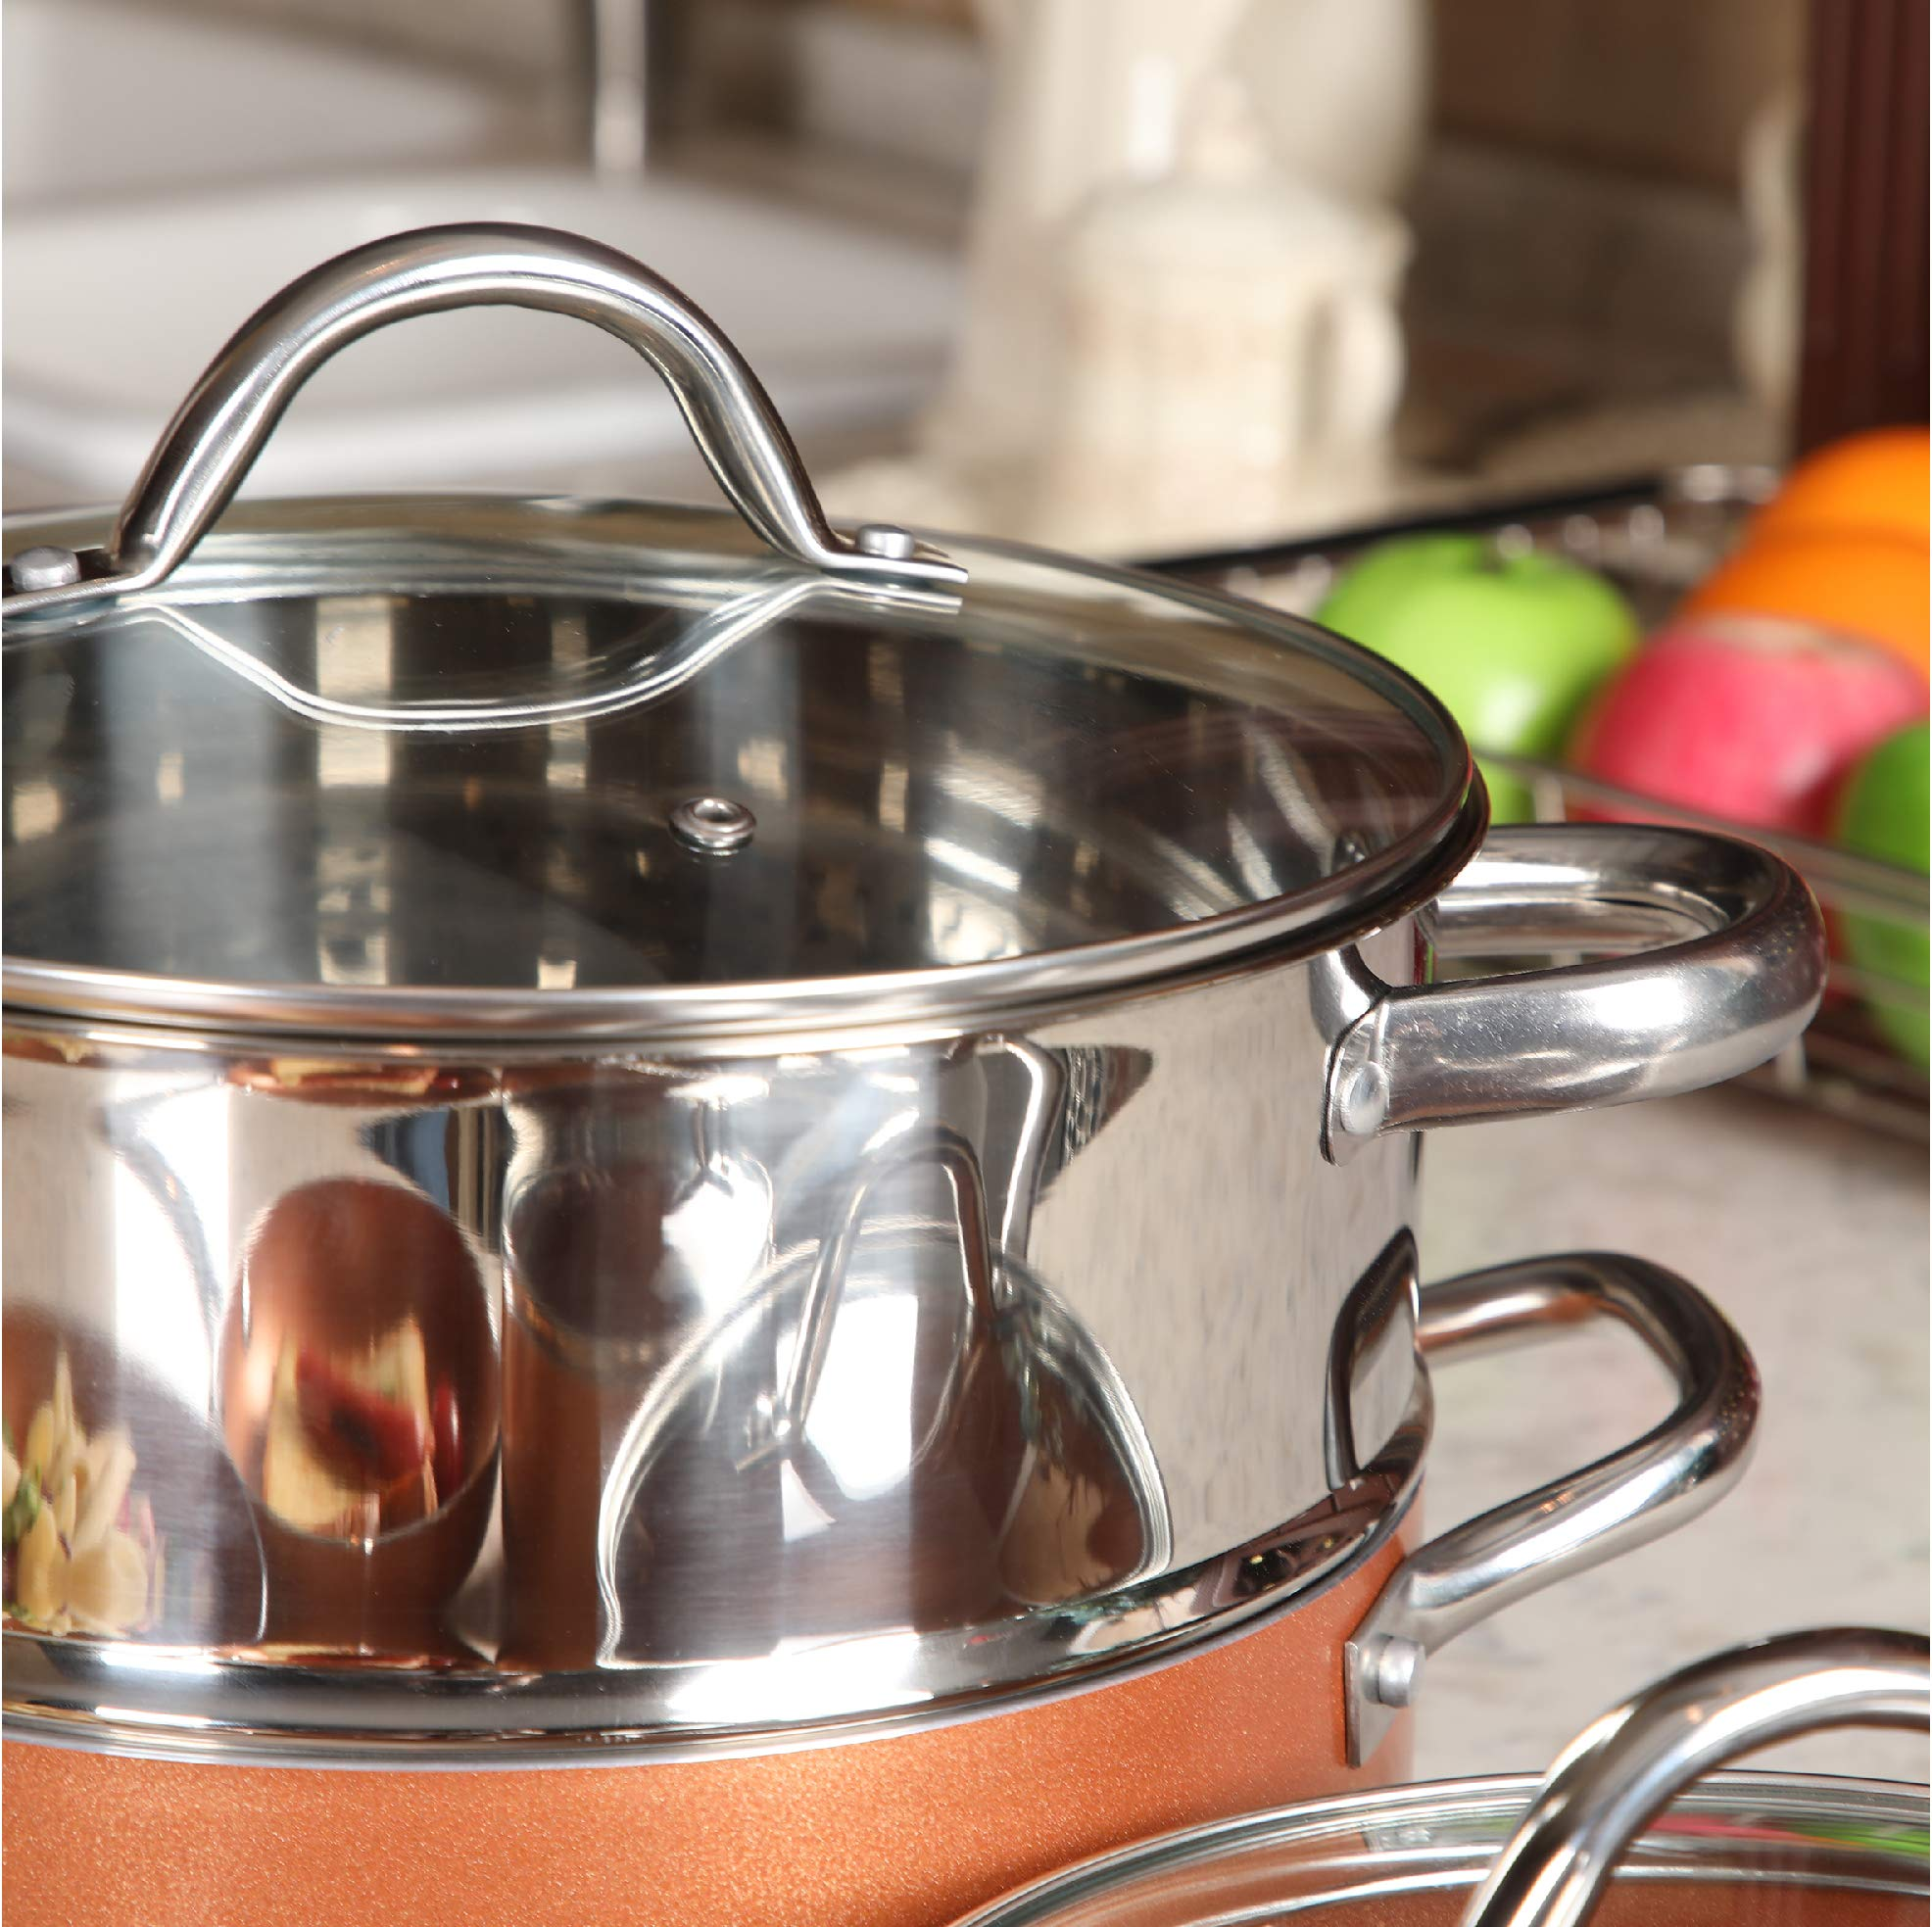 Kitchen Academy 10 Piece Nonstick Induction Cookware Set Includes Lids, Frying and Roasting Pans Accessories by Kitchen Academy (Image #7)